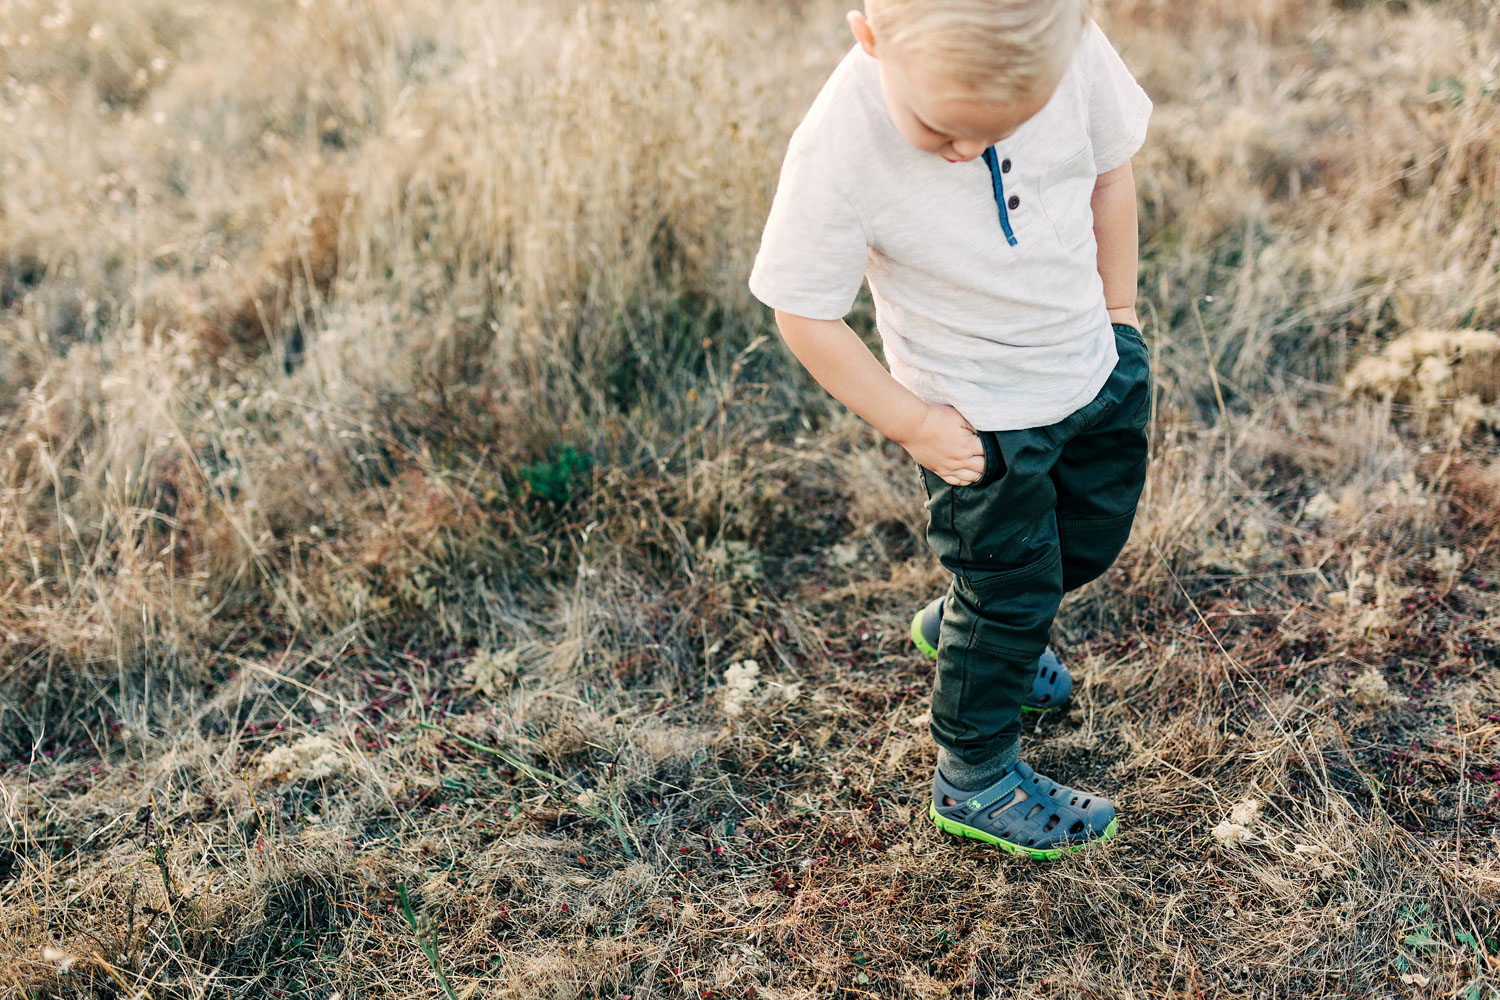 A toddler boy is photographed finding his pockets during a lifestyle family photo session with photographer Amy Wright, based out of Sacramento, California.